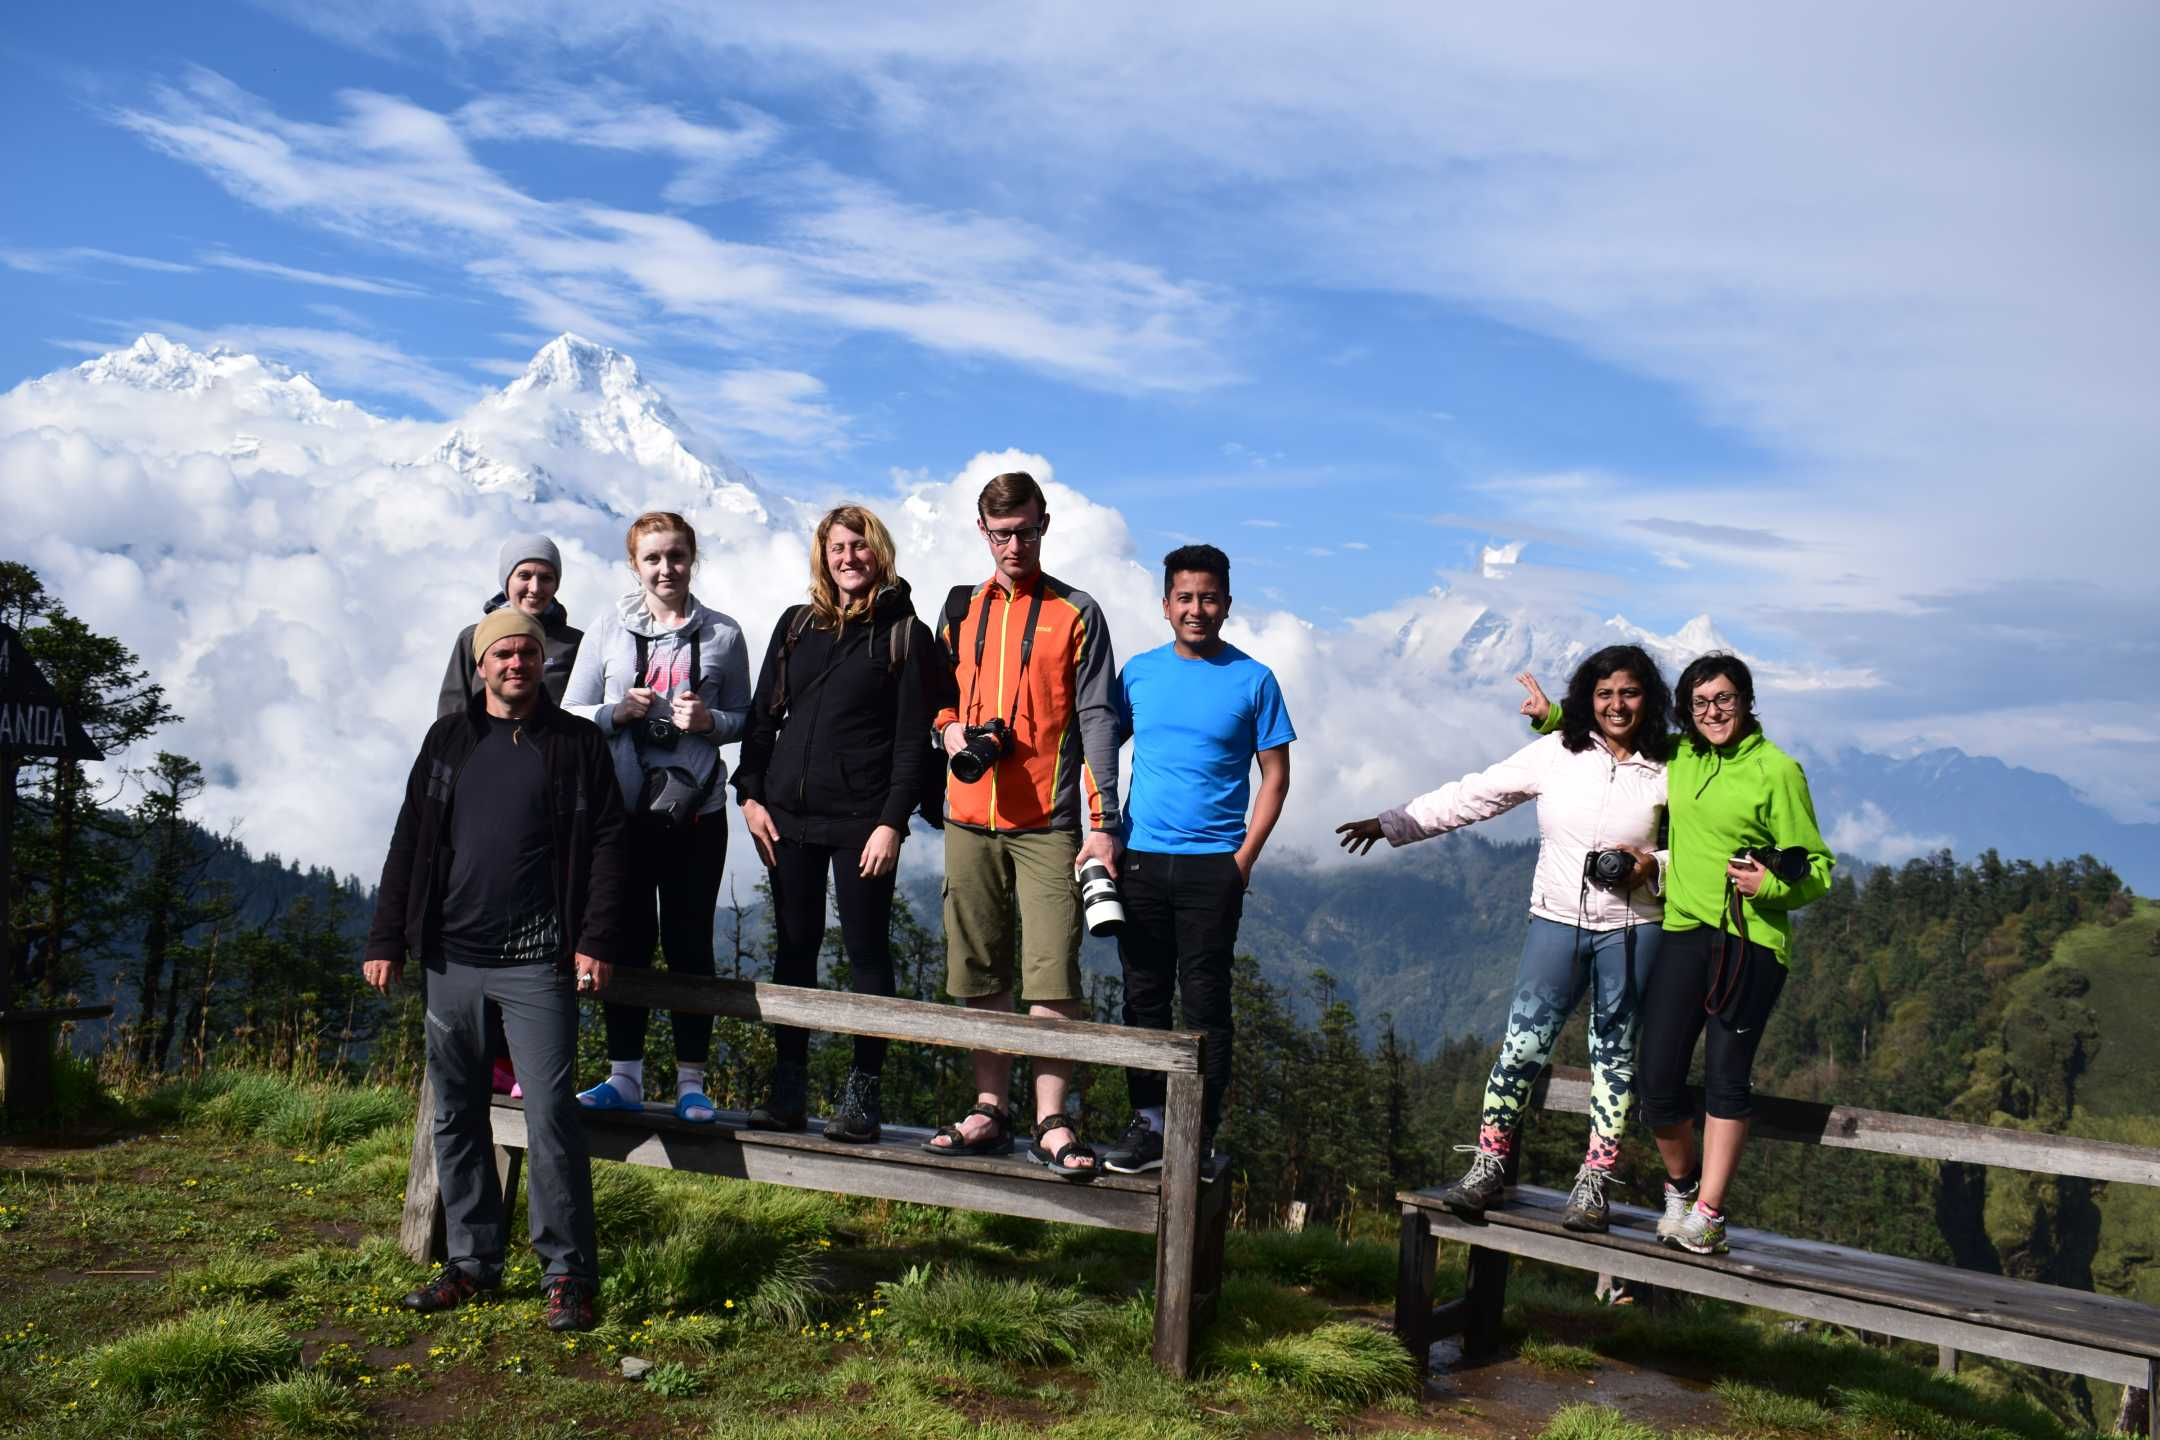 Trekkers enjoying at Mohare Danda, the highest point of the Annapurna Community Trek